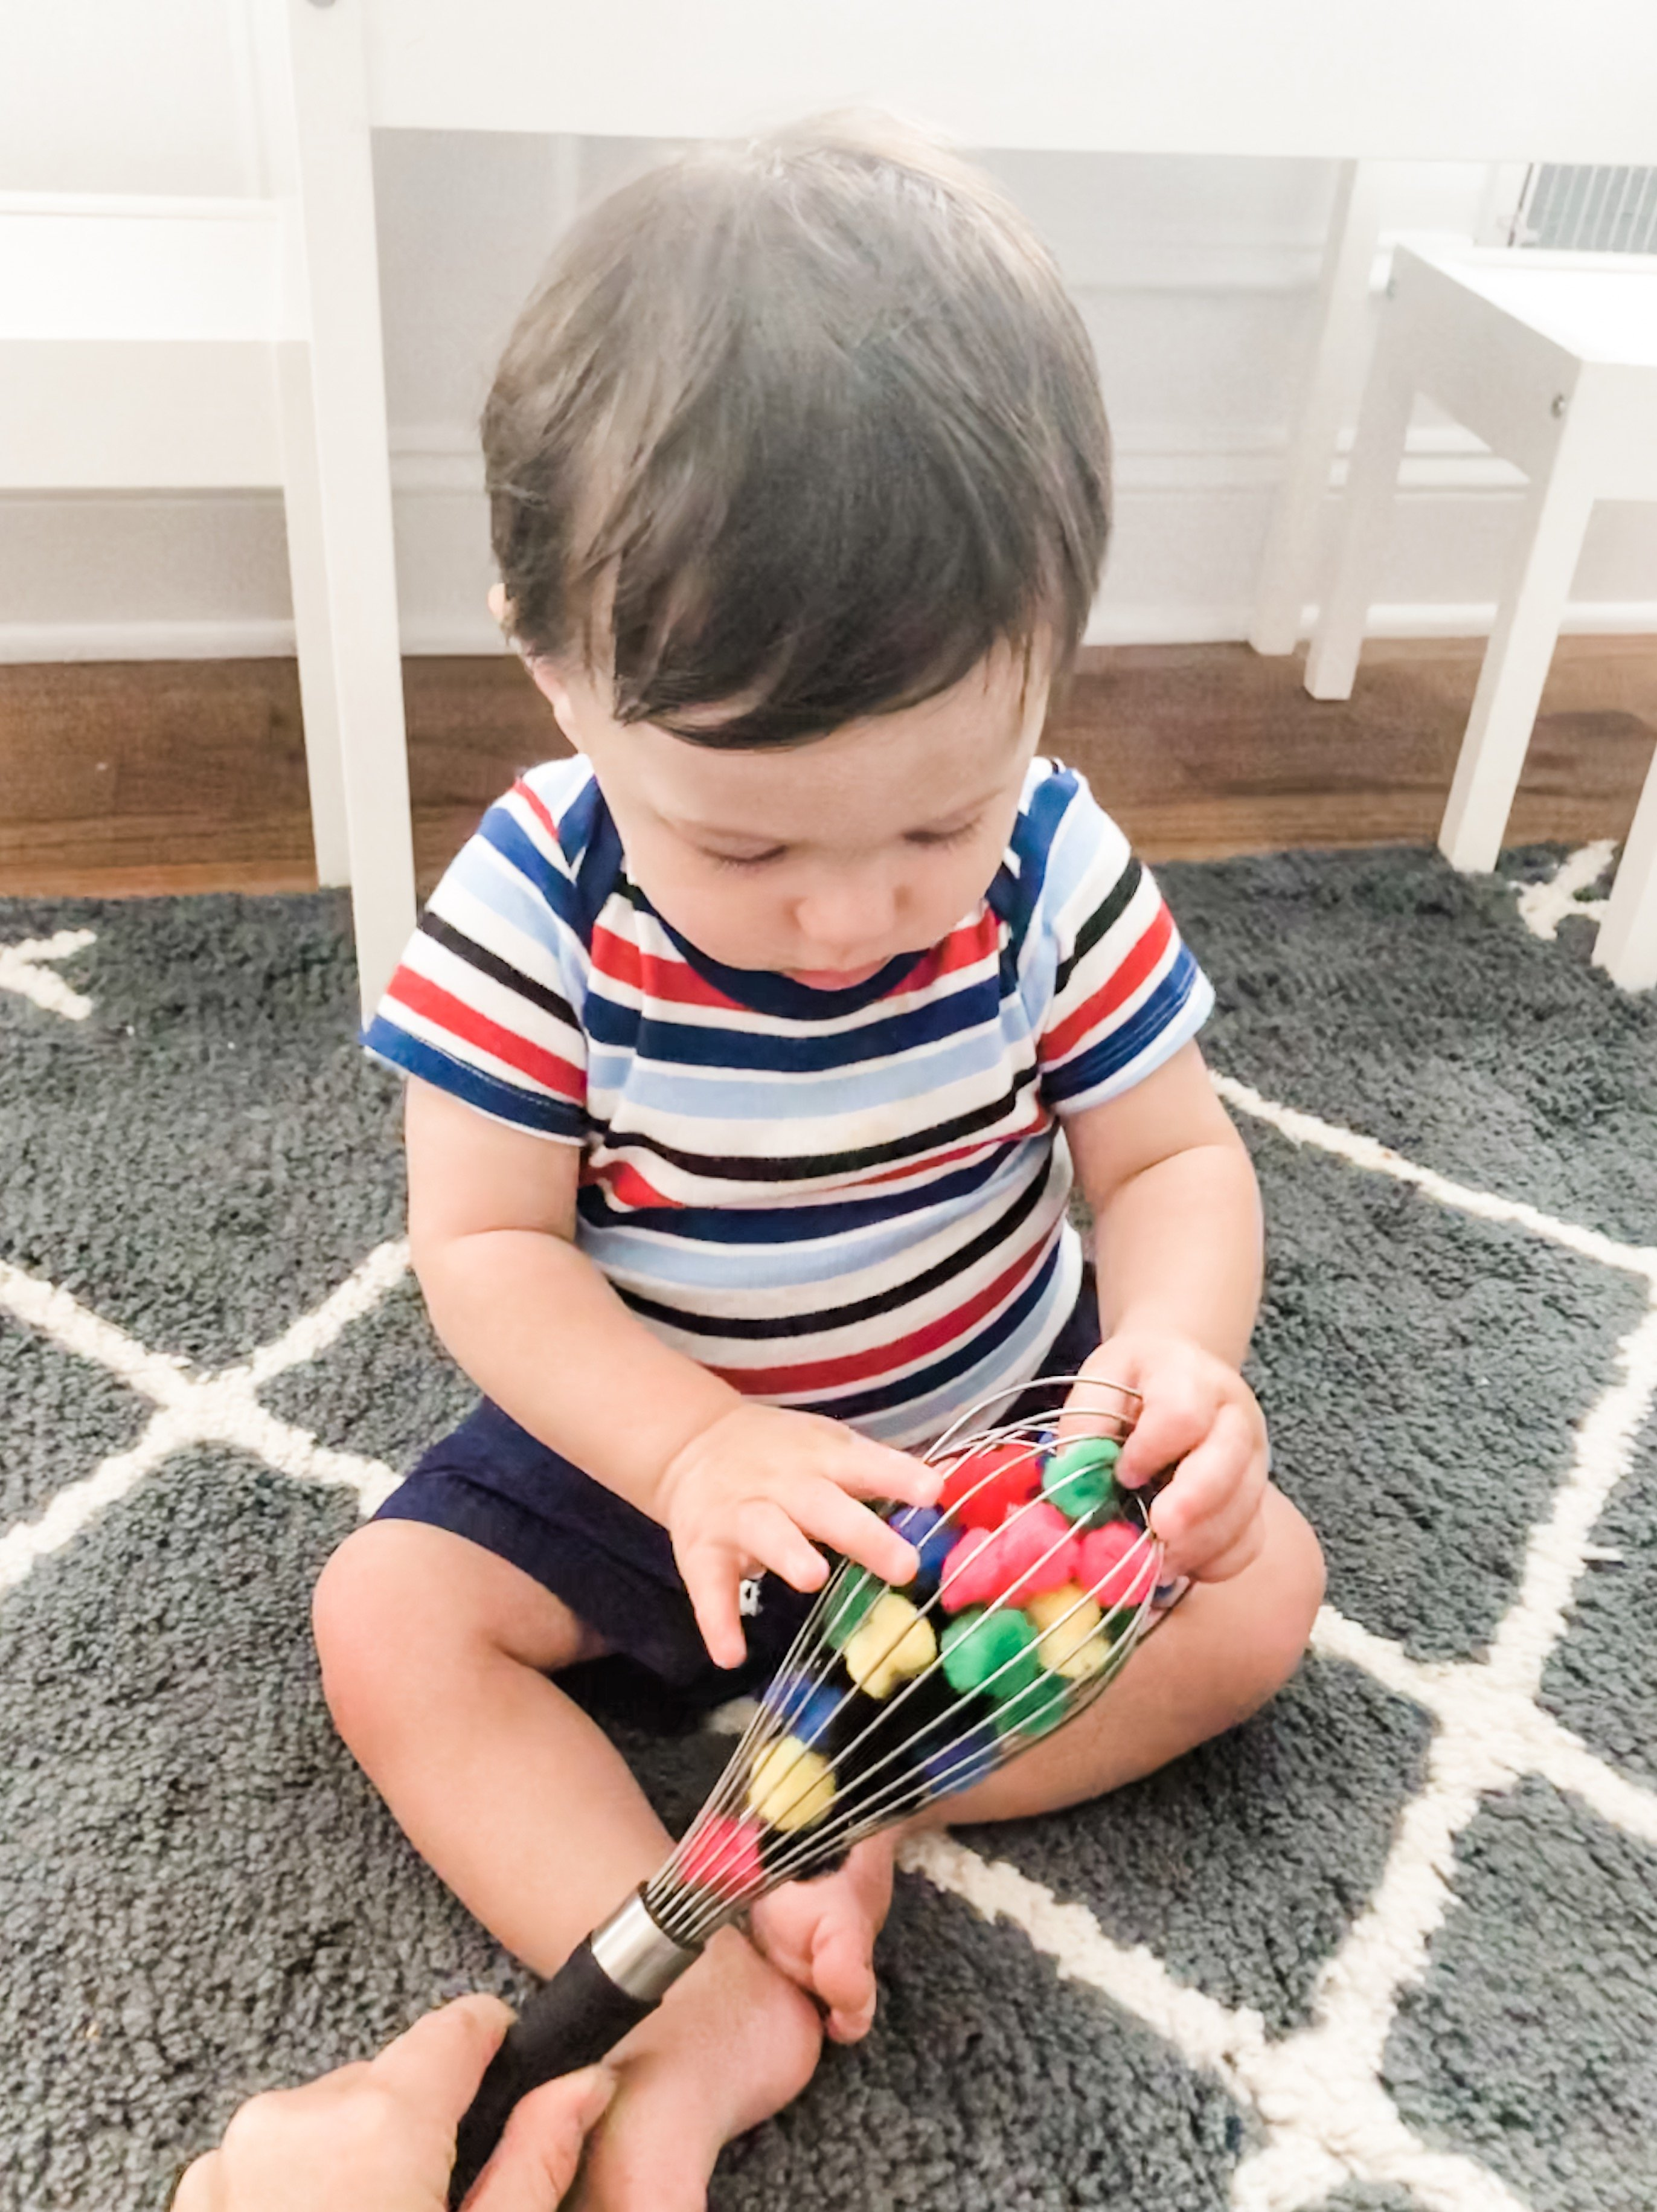 This pompom whisk baby activity works on fine motor skills and learning. Using colored poms is a great fine motor activity for infants 9 months or older.